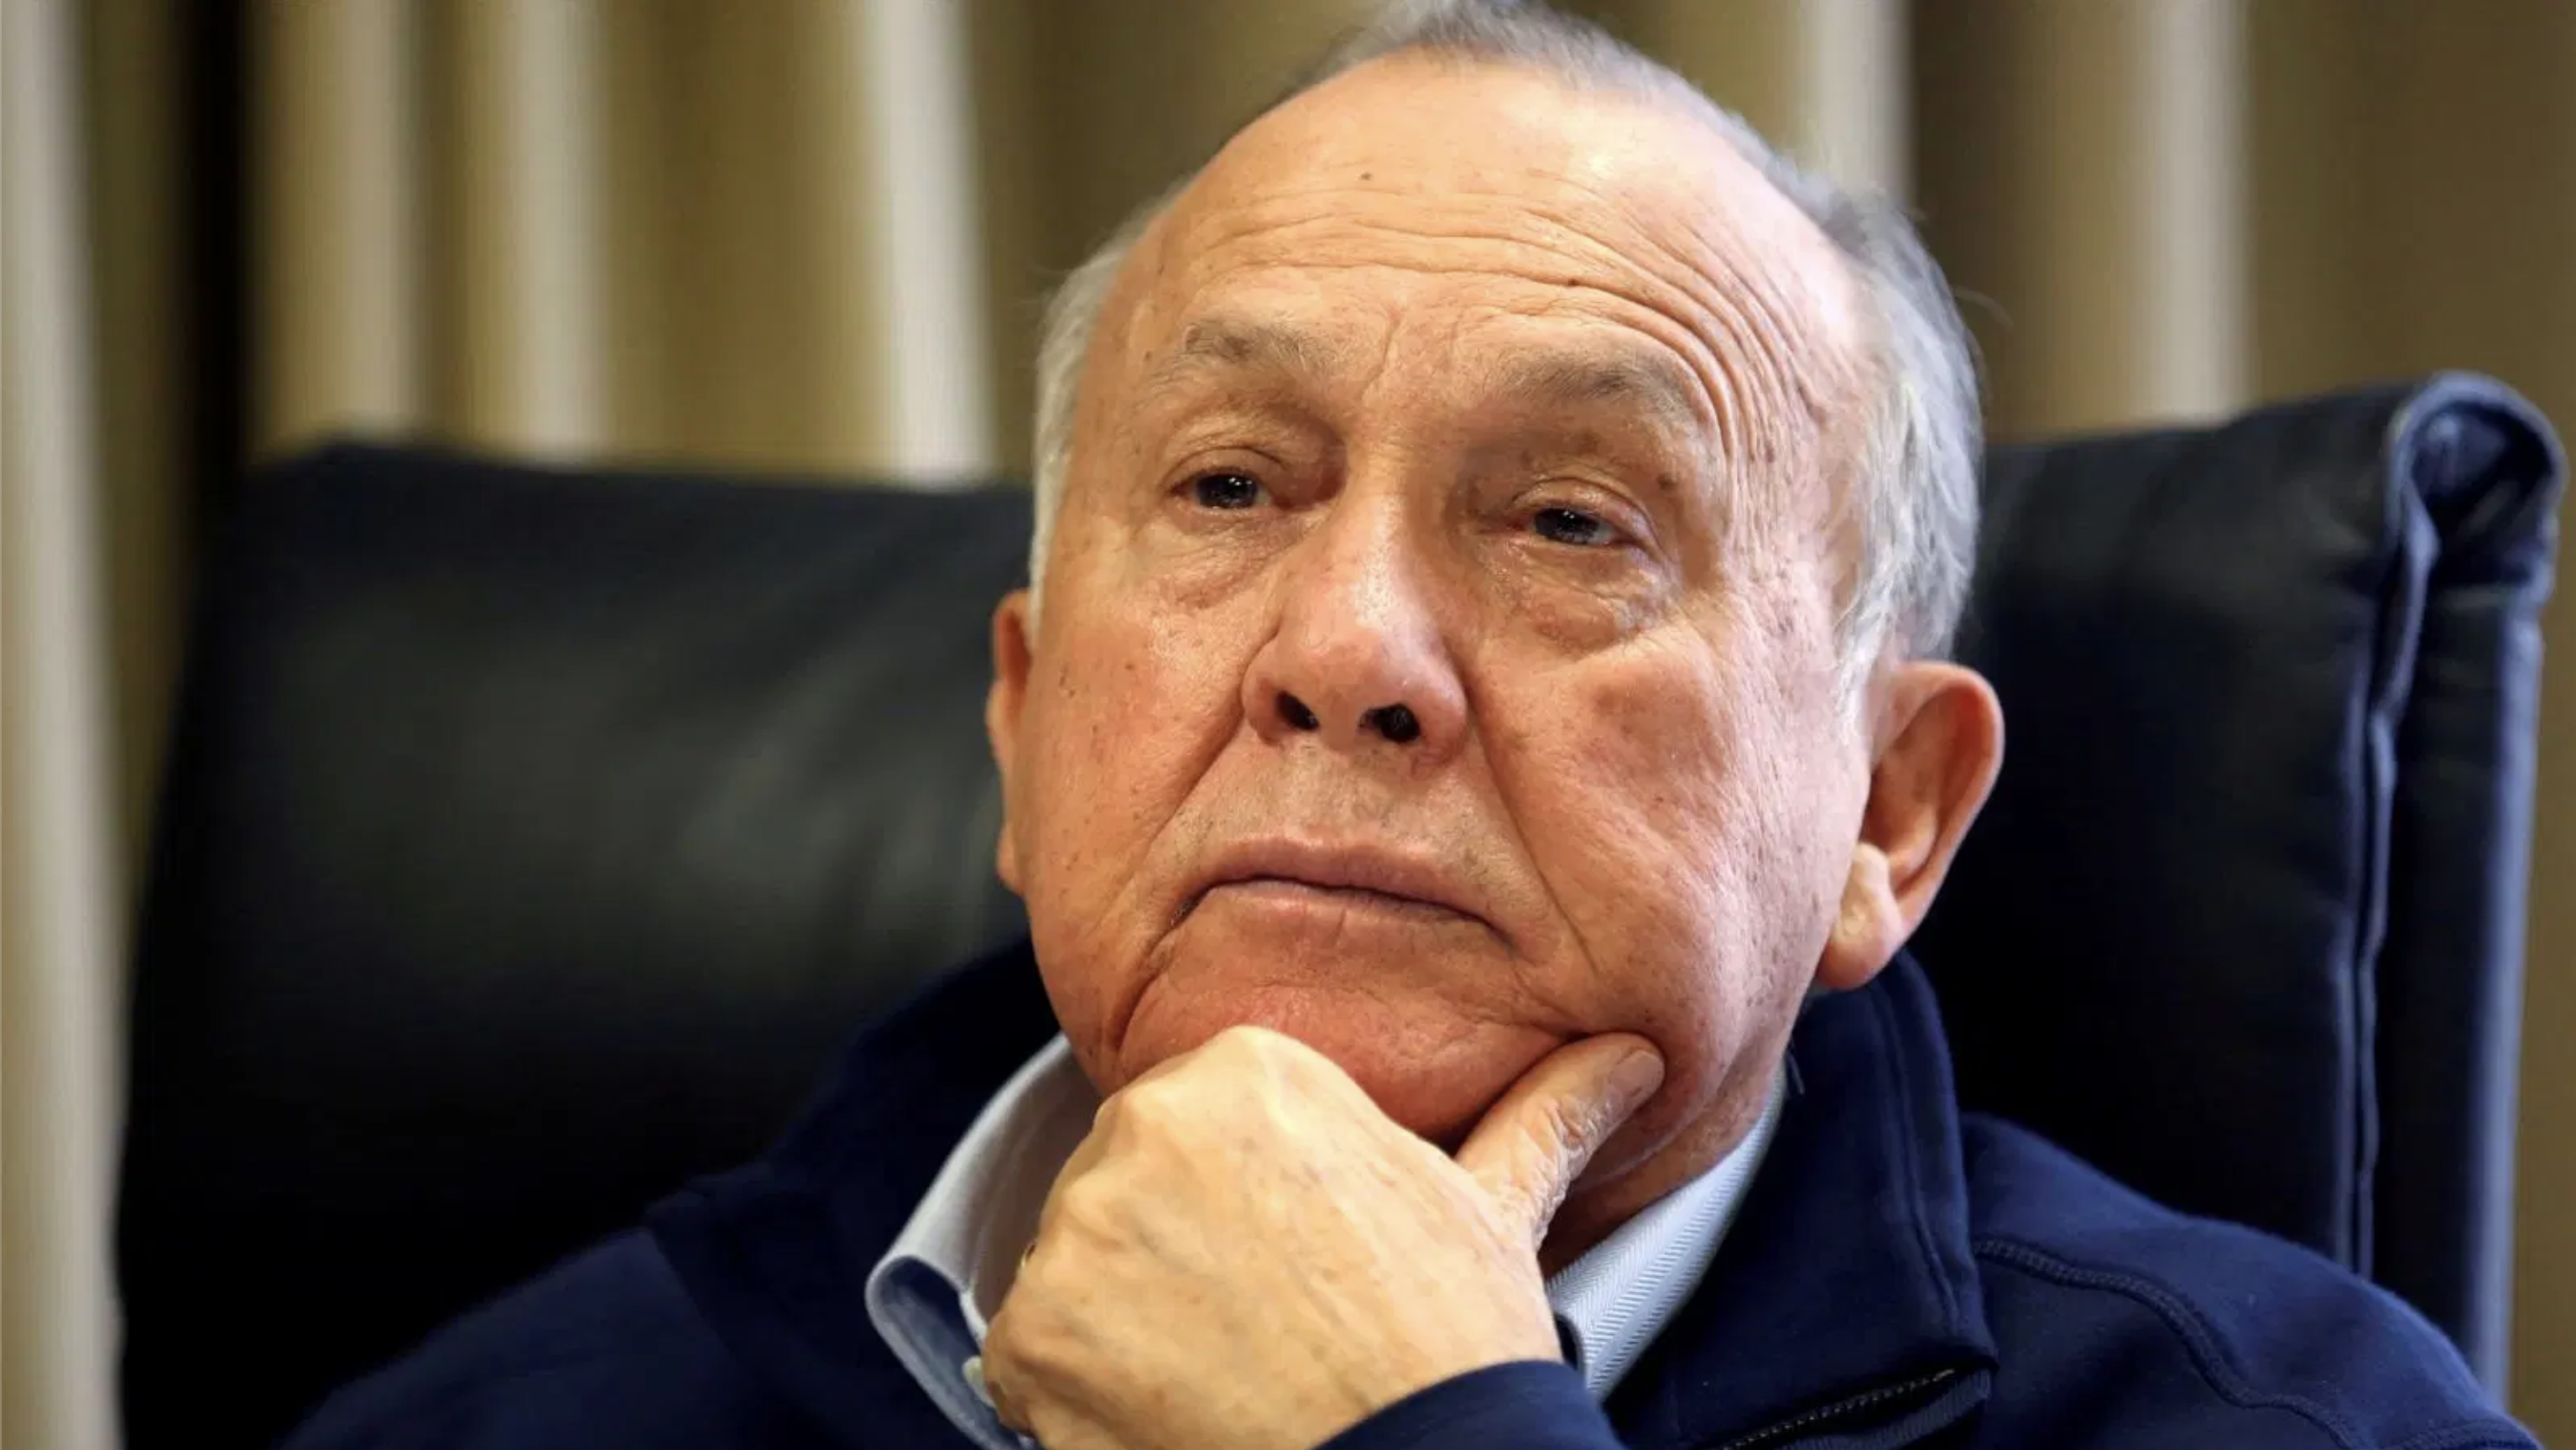 Christo Wiese, Tullow Oil and ENS's tax dodging services